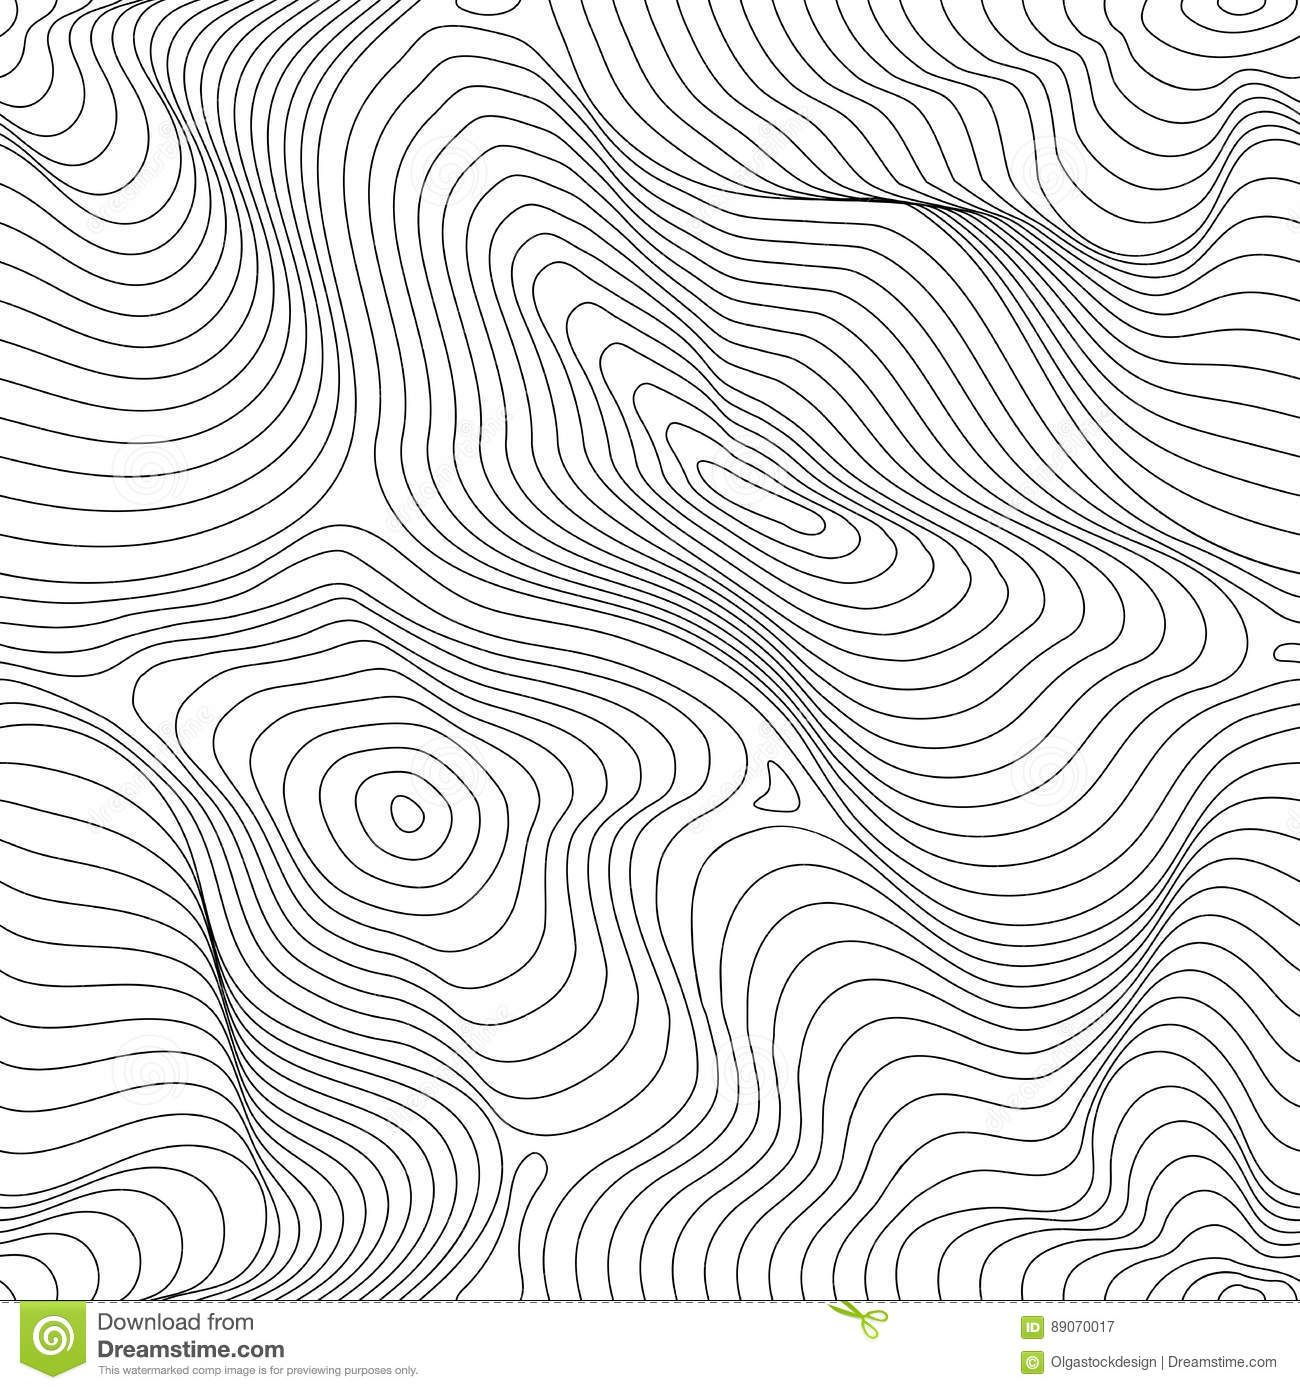 Abstract Dynamical Rippled Surface Vector Monochrome